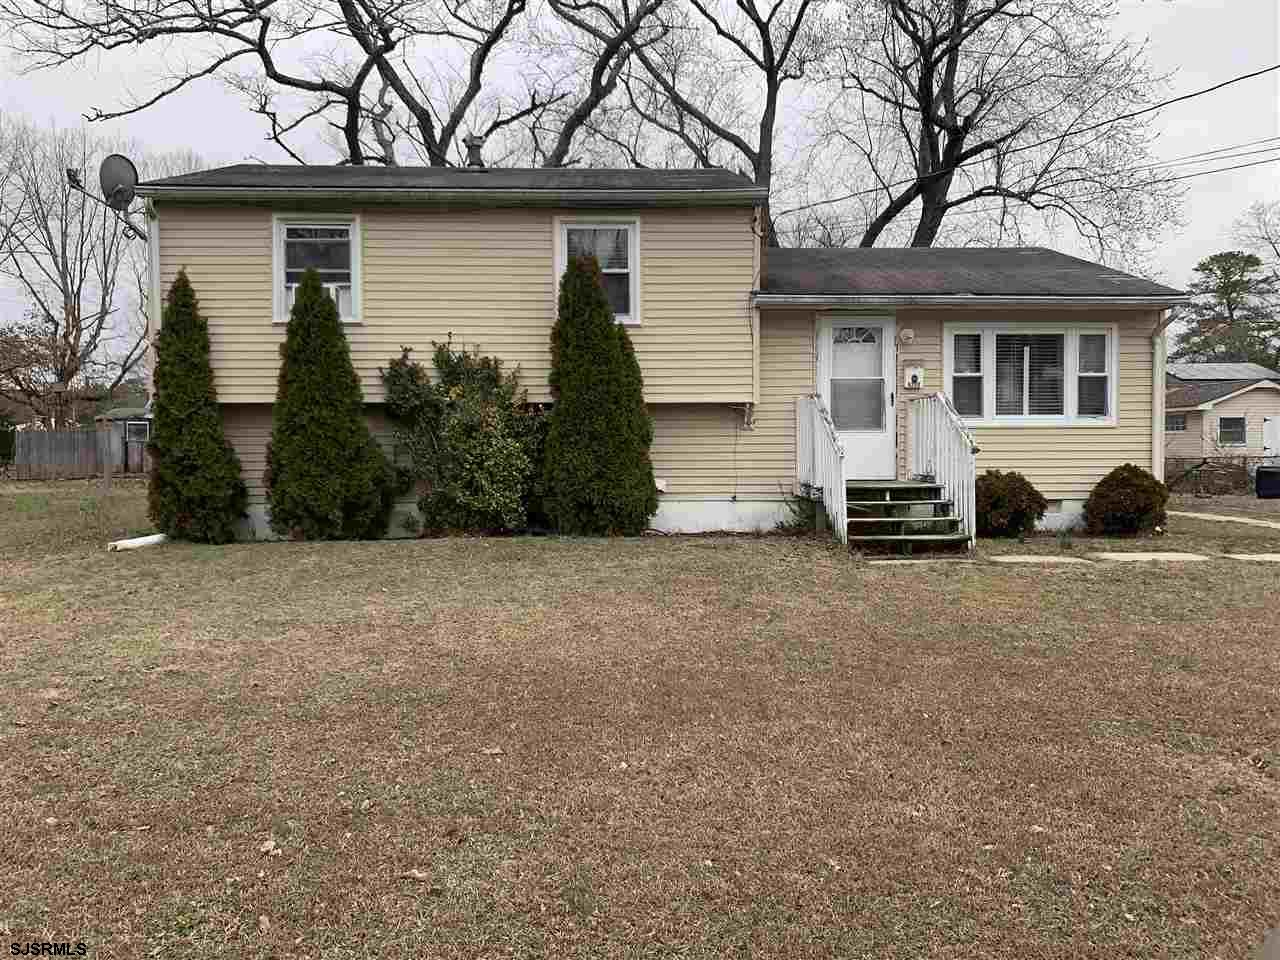 Nicely maintained 3 bedroom, 1 bath home. Hardwood floors, nice room sizes, eat-in kitchen, family r